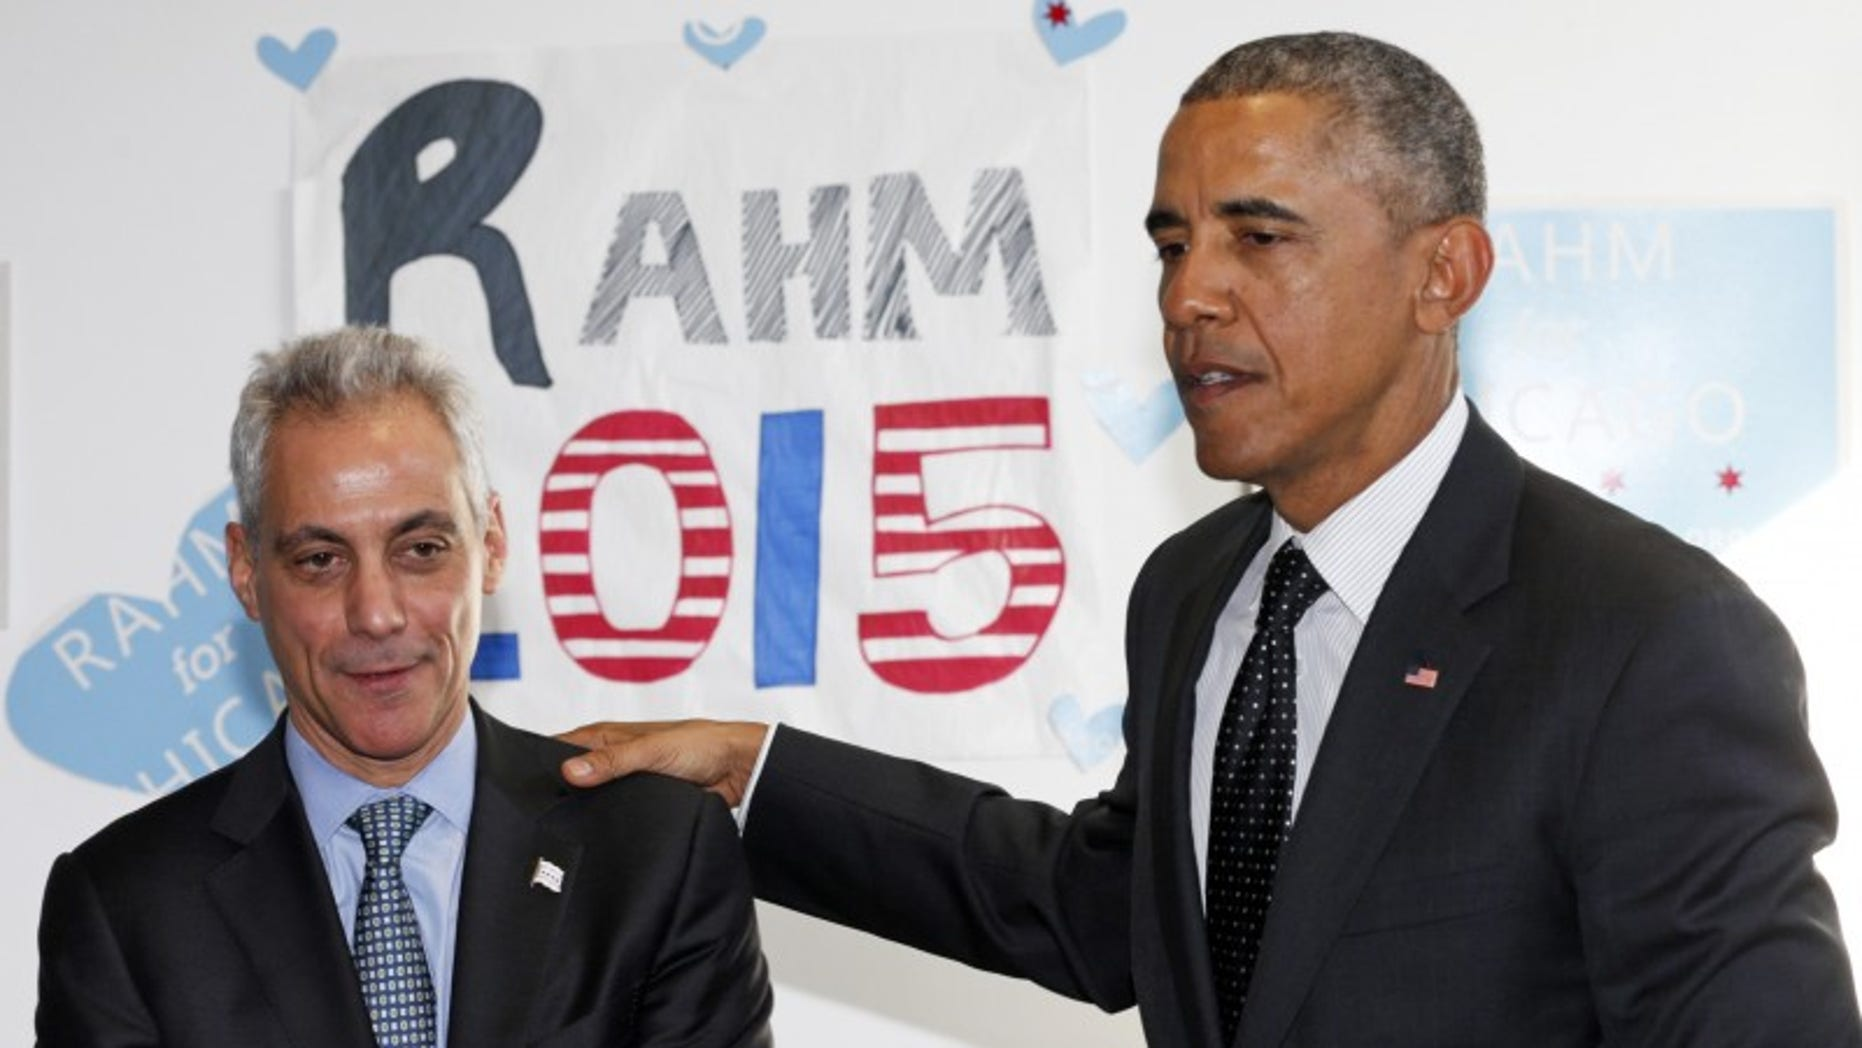 U.S. President Barack Obama puts his hand on Chicago Mayor Rahm Emanuel's shoulder as they visit a campaign office in Chicago February 19, 2015. REUTERS/Kevin Lamarque